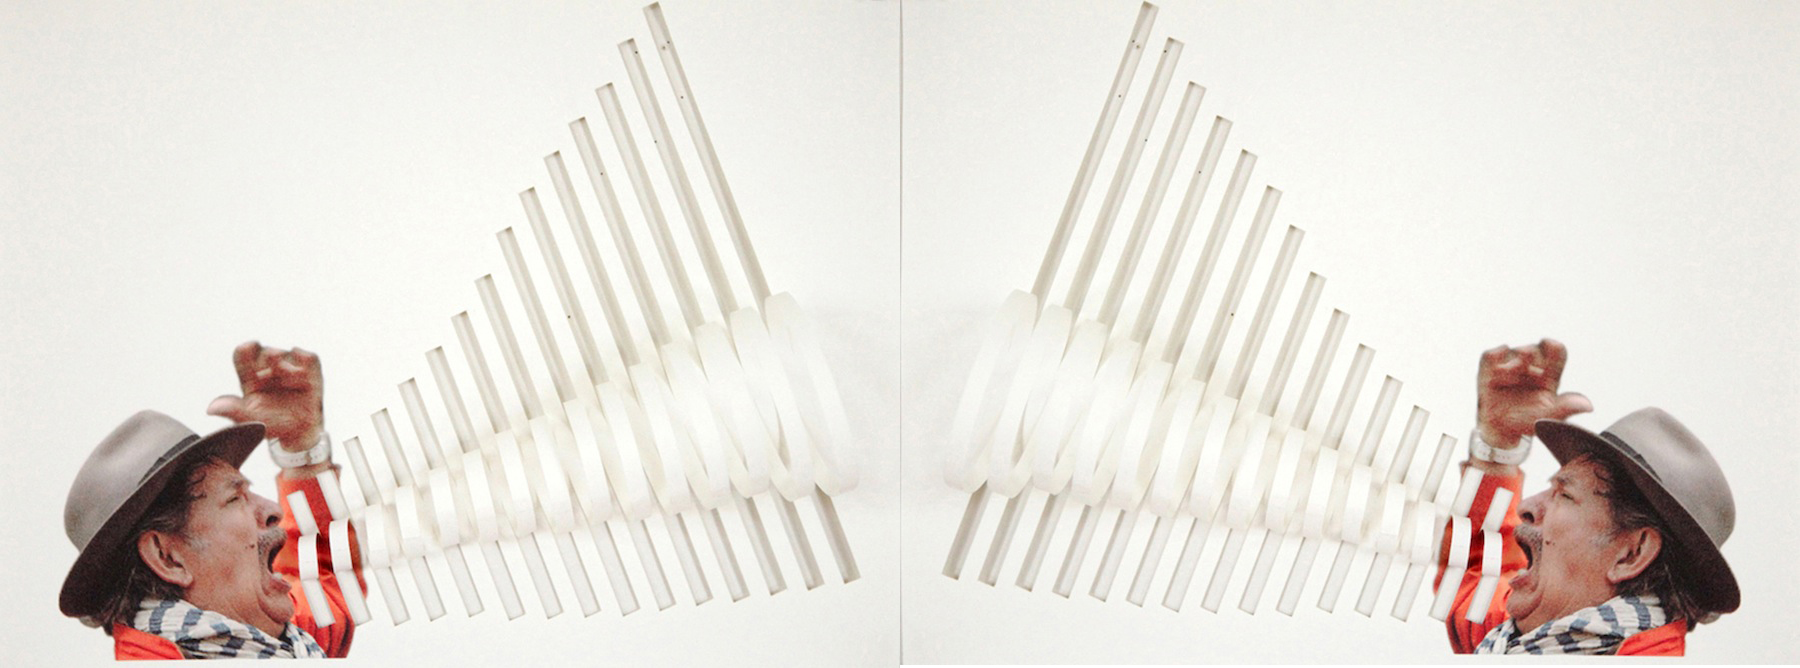 Miguel Ángel Ríos, META (diptych), 2012. Courtesy of the artist and Sicardi Gallery.